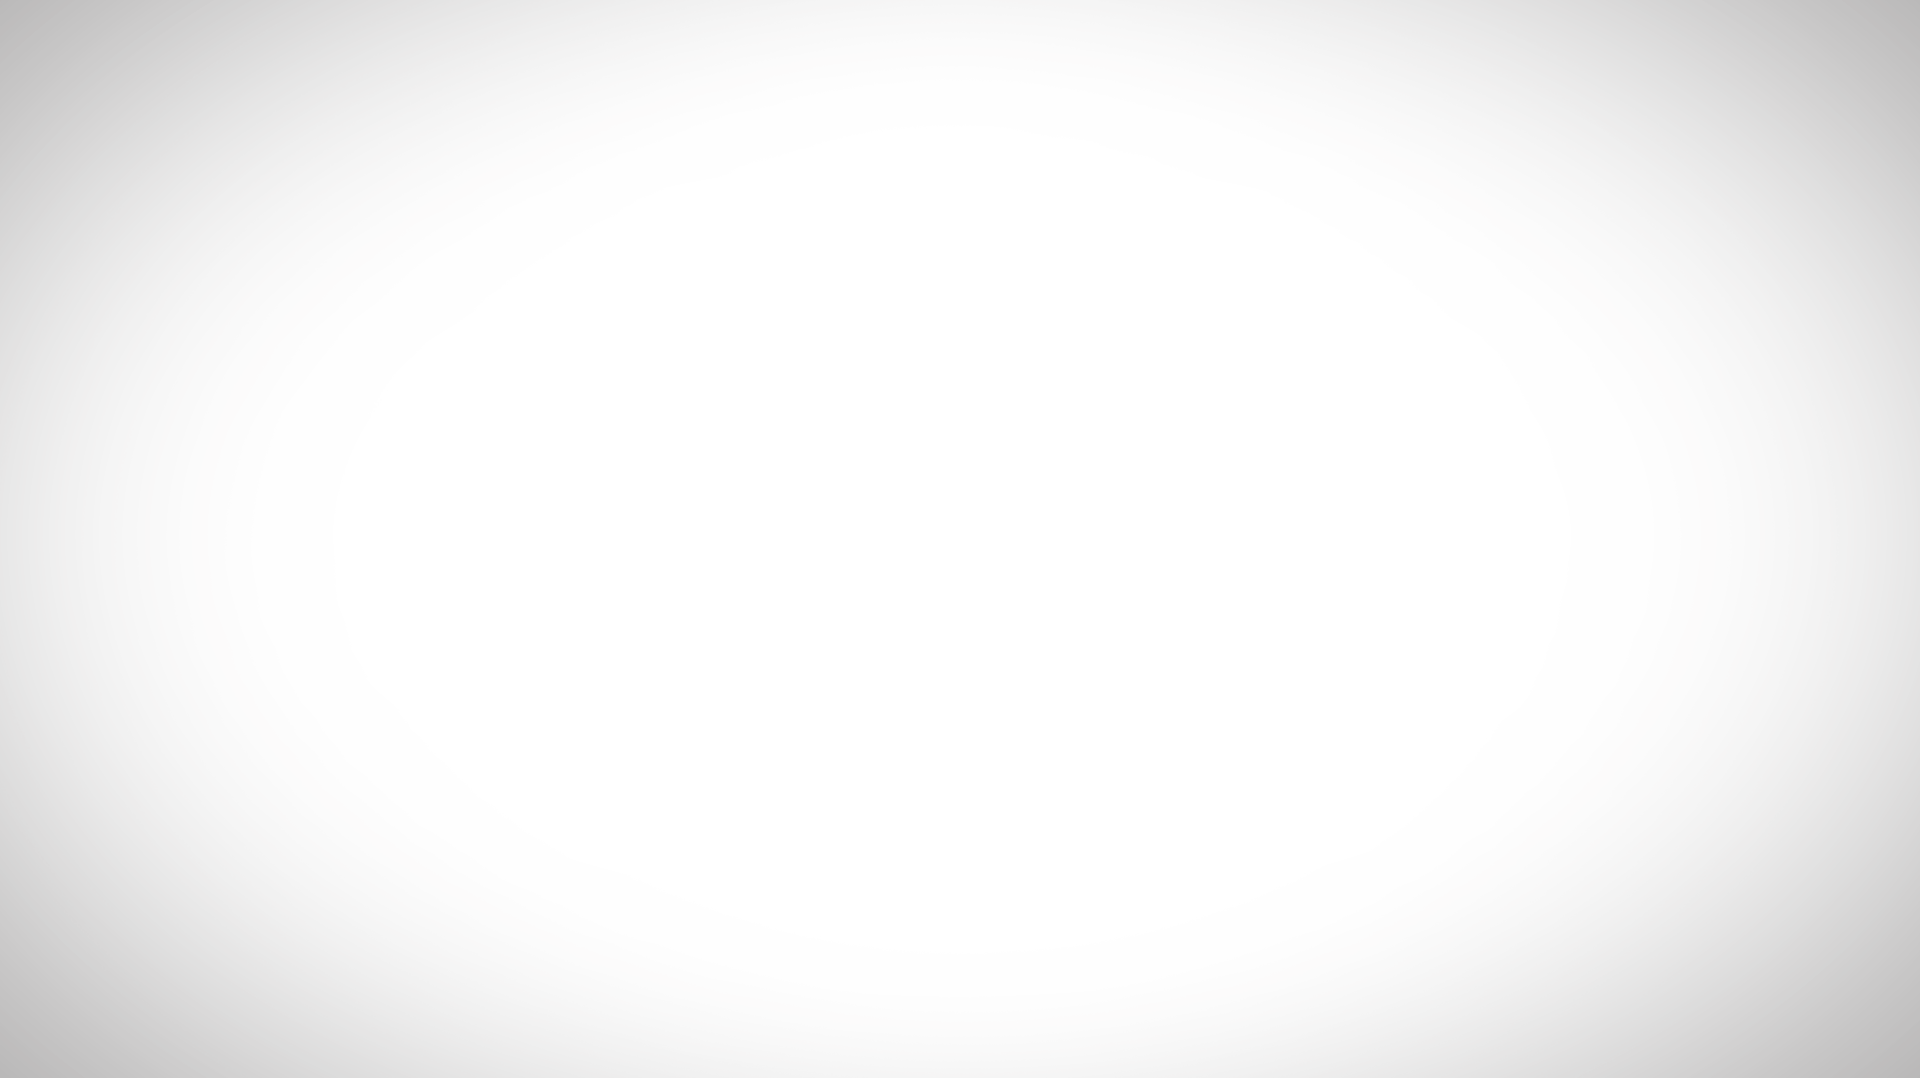 Obagi amwc r s. Vignette png 1920x1080 png black and white library